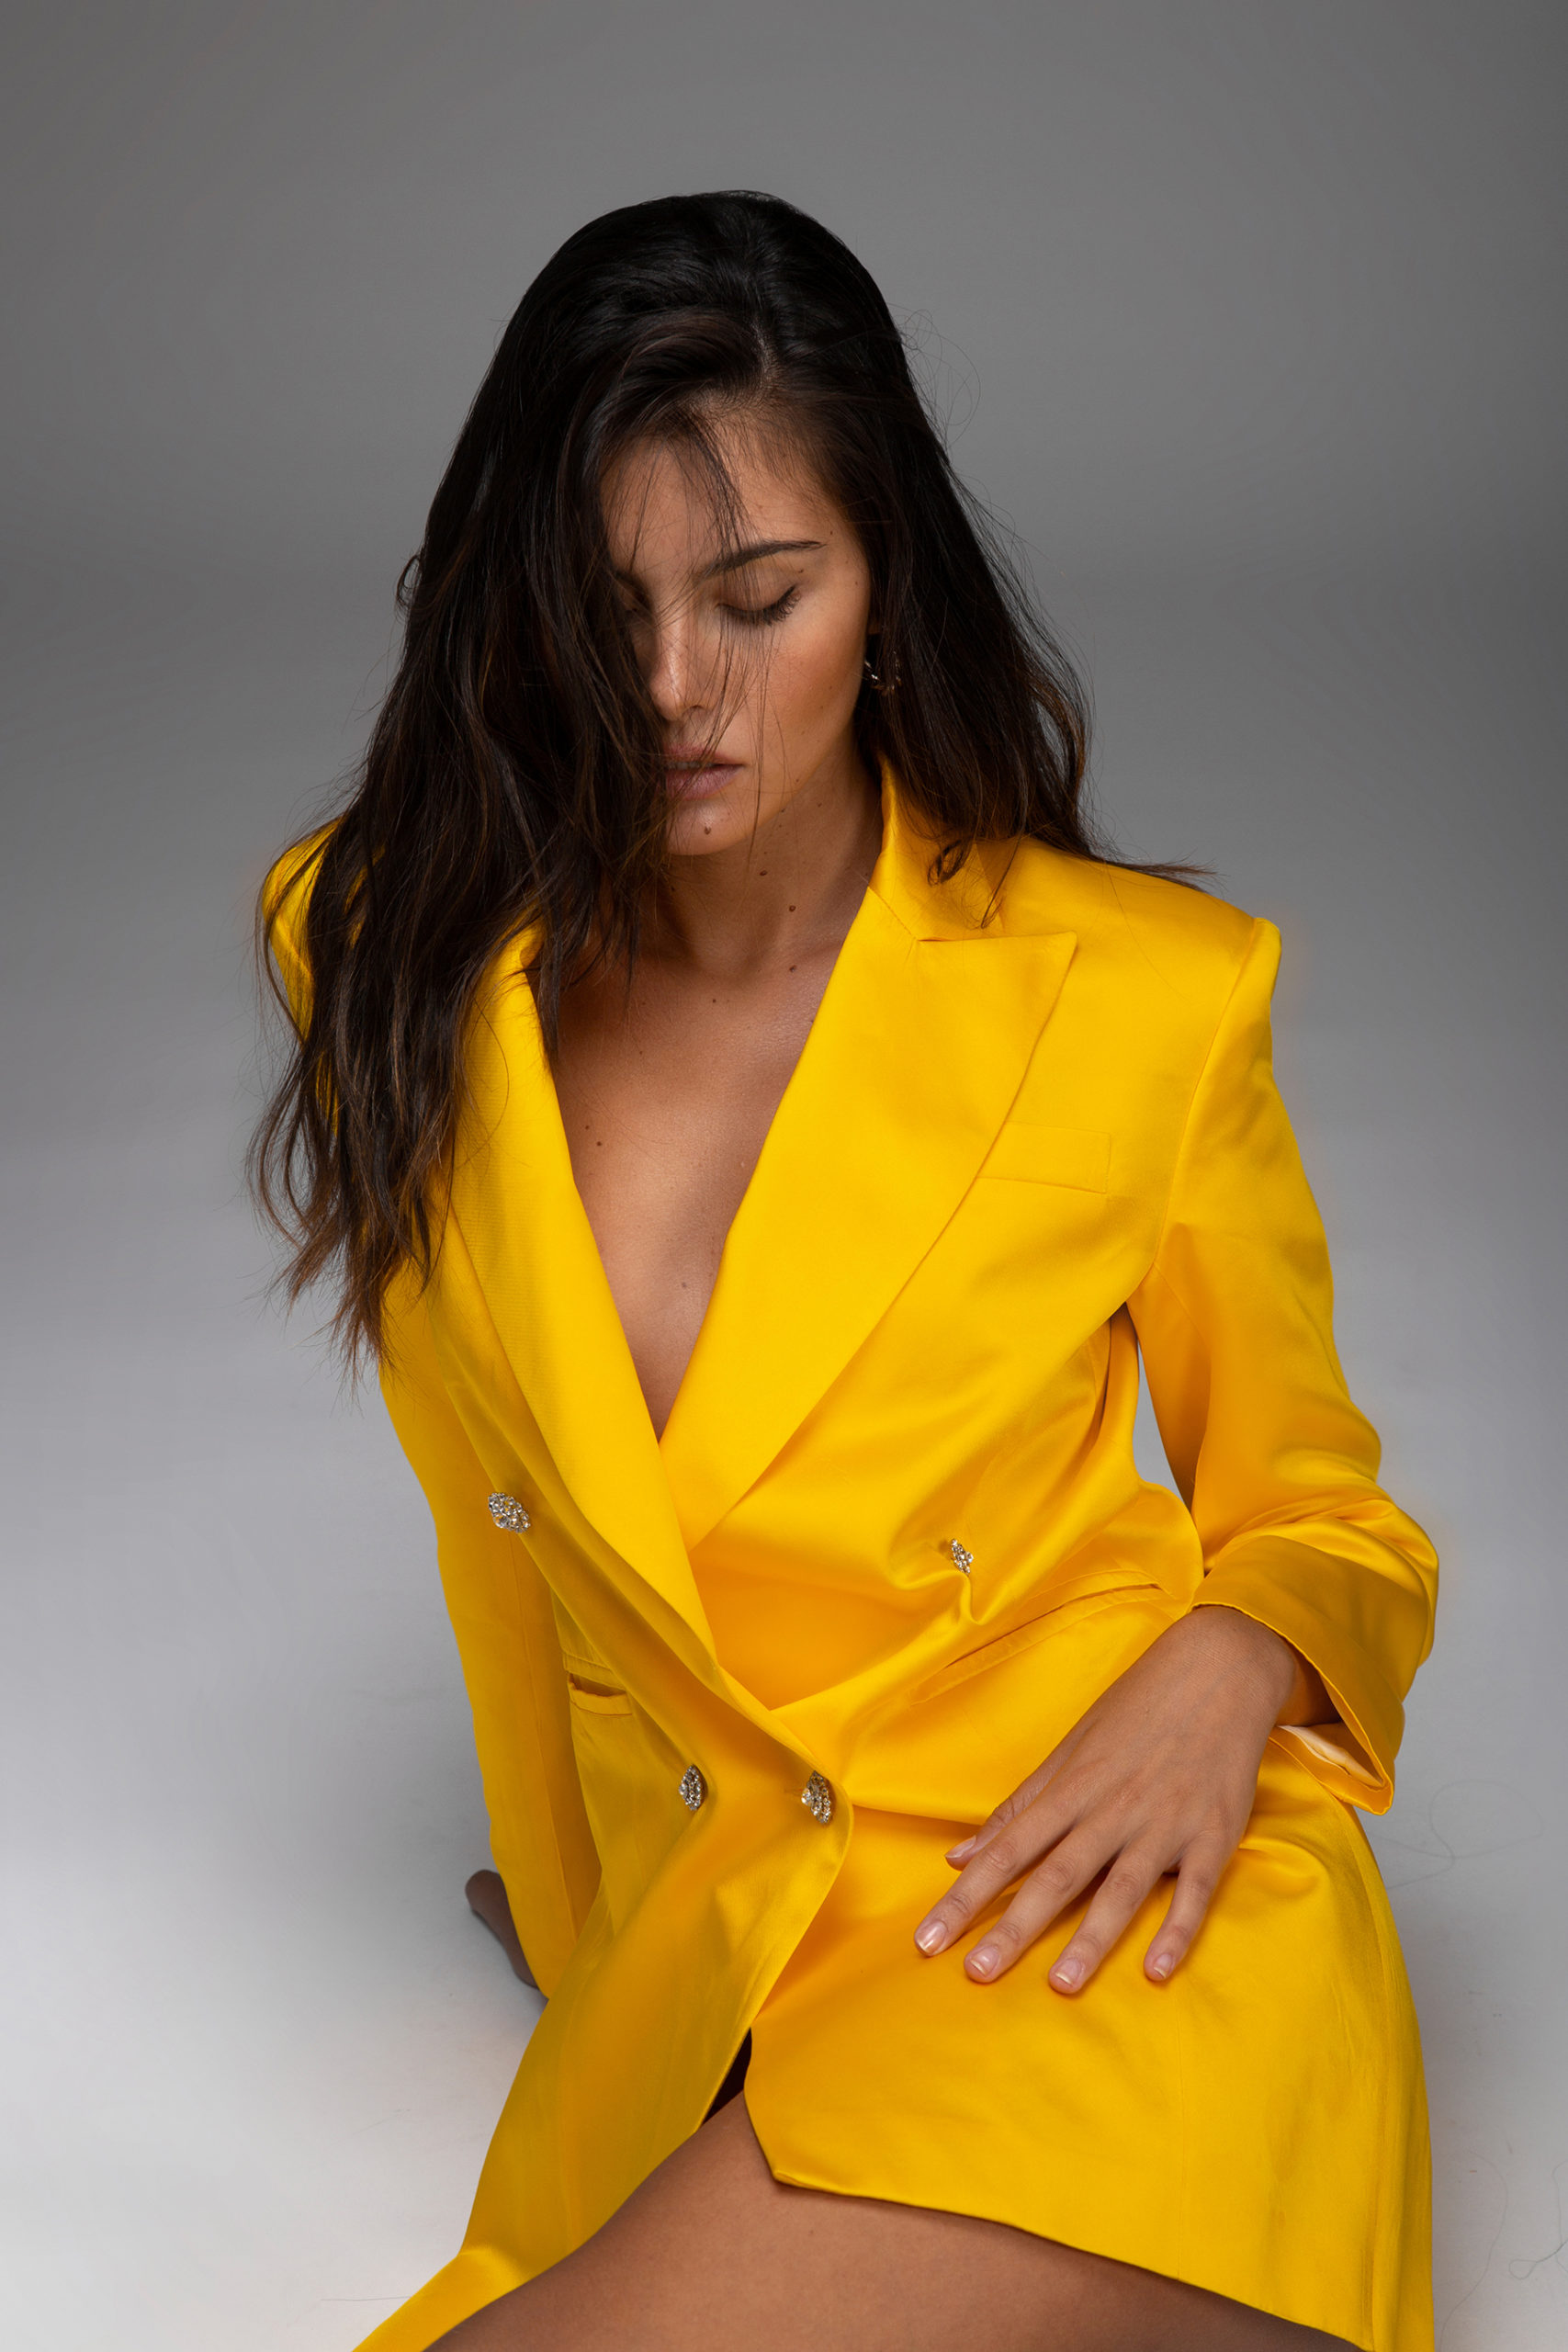 womance-tuxedo-smokin-chaqueta-seda-mini-dress-yellow-hq-6